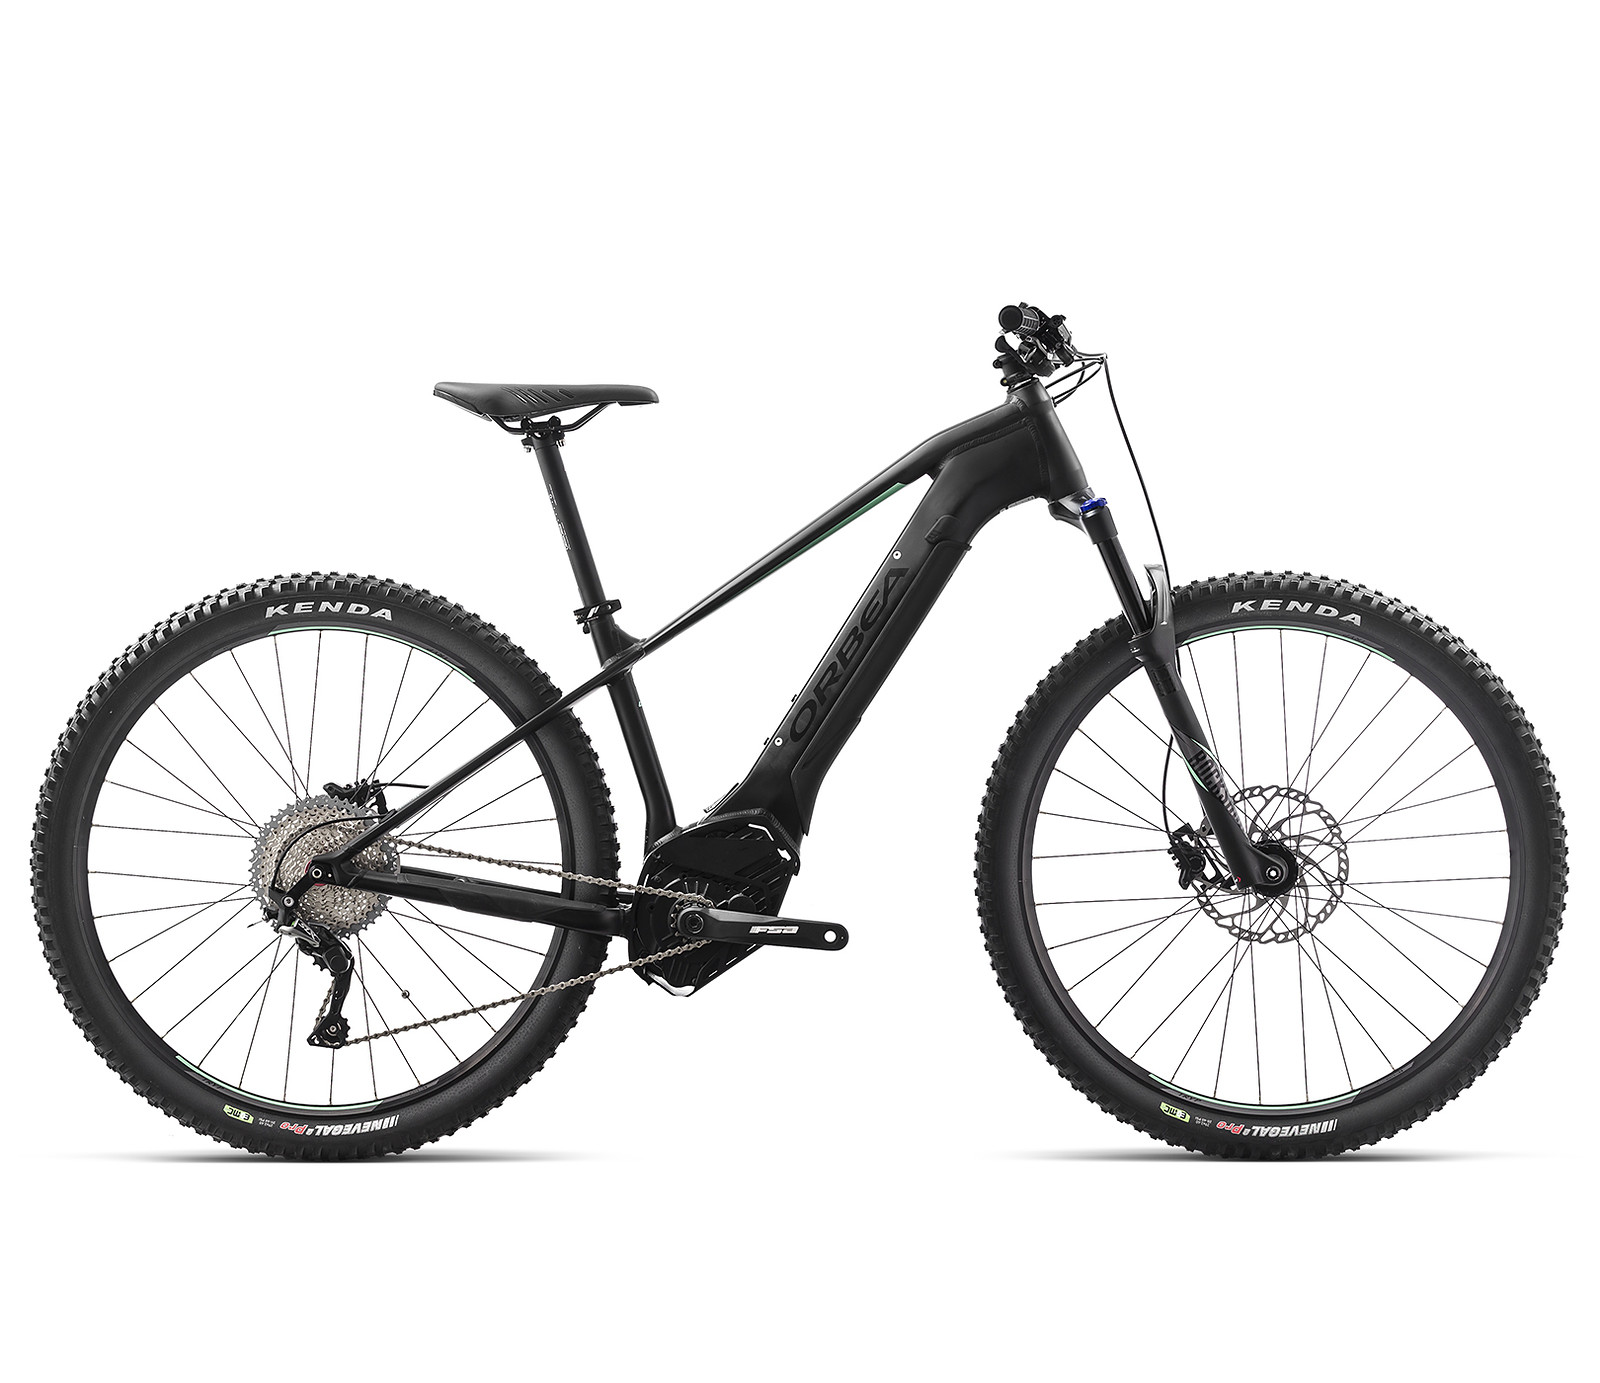 orbea e bike mountainbike wild ht 30 29 zoll 41 5 cm 500. Black Bedroom Furniture Sets. Home Design Ideas